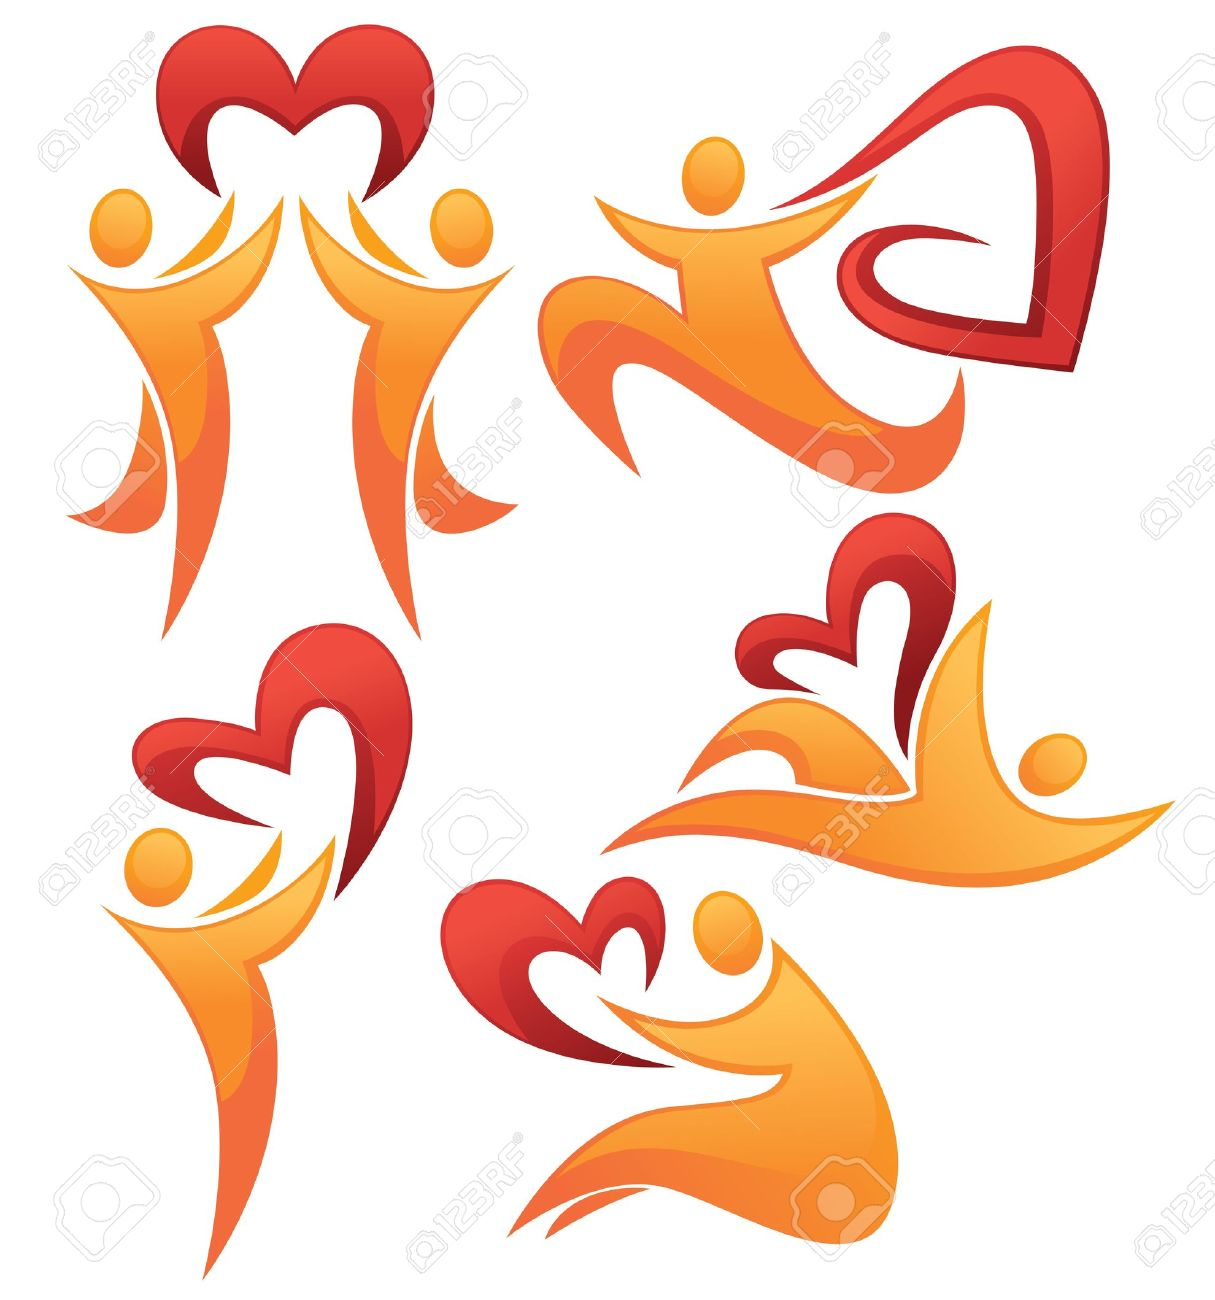 109 Valentine Heard Stock Vector Illustration And Royalty Free